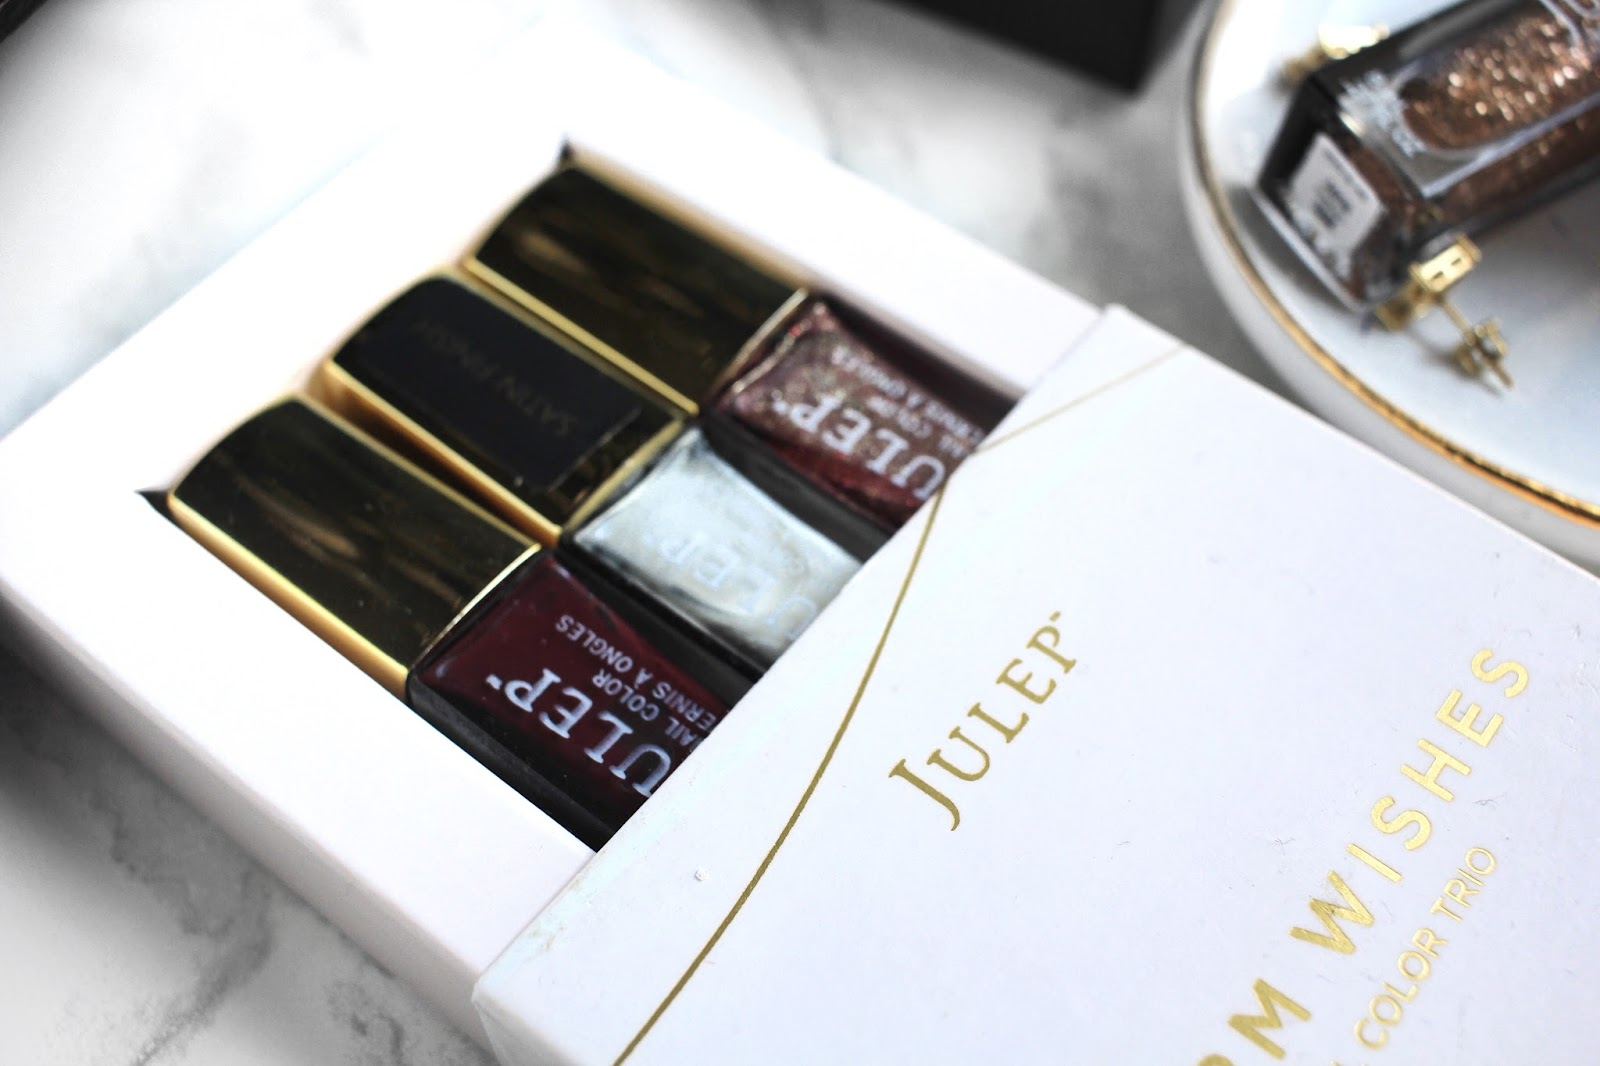 Christmas Gift Ideas: Subscription Boxes | ft. Julep, Monthly Watch Club, MunchPak, AdoreMe, GlossyBox || The Glam Surge